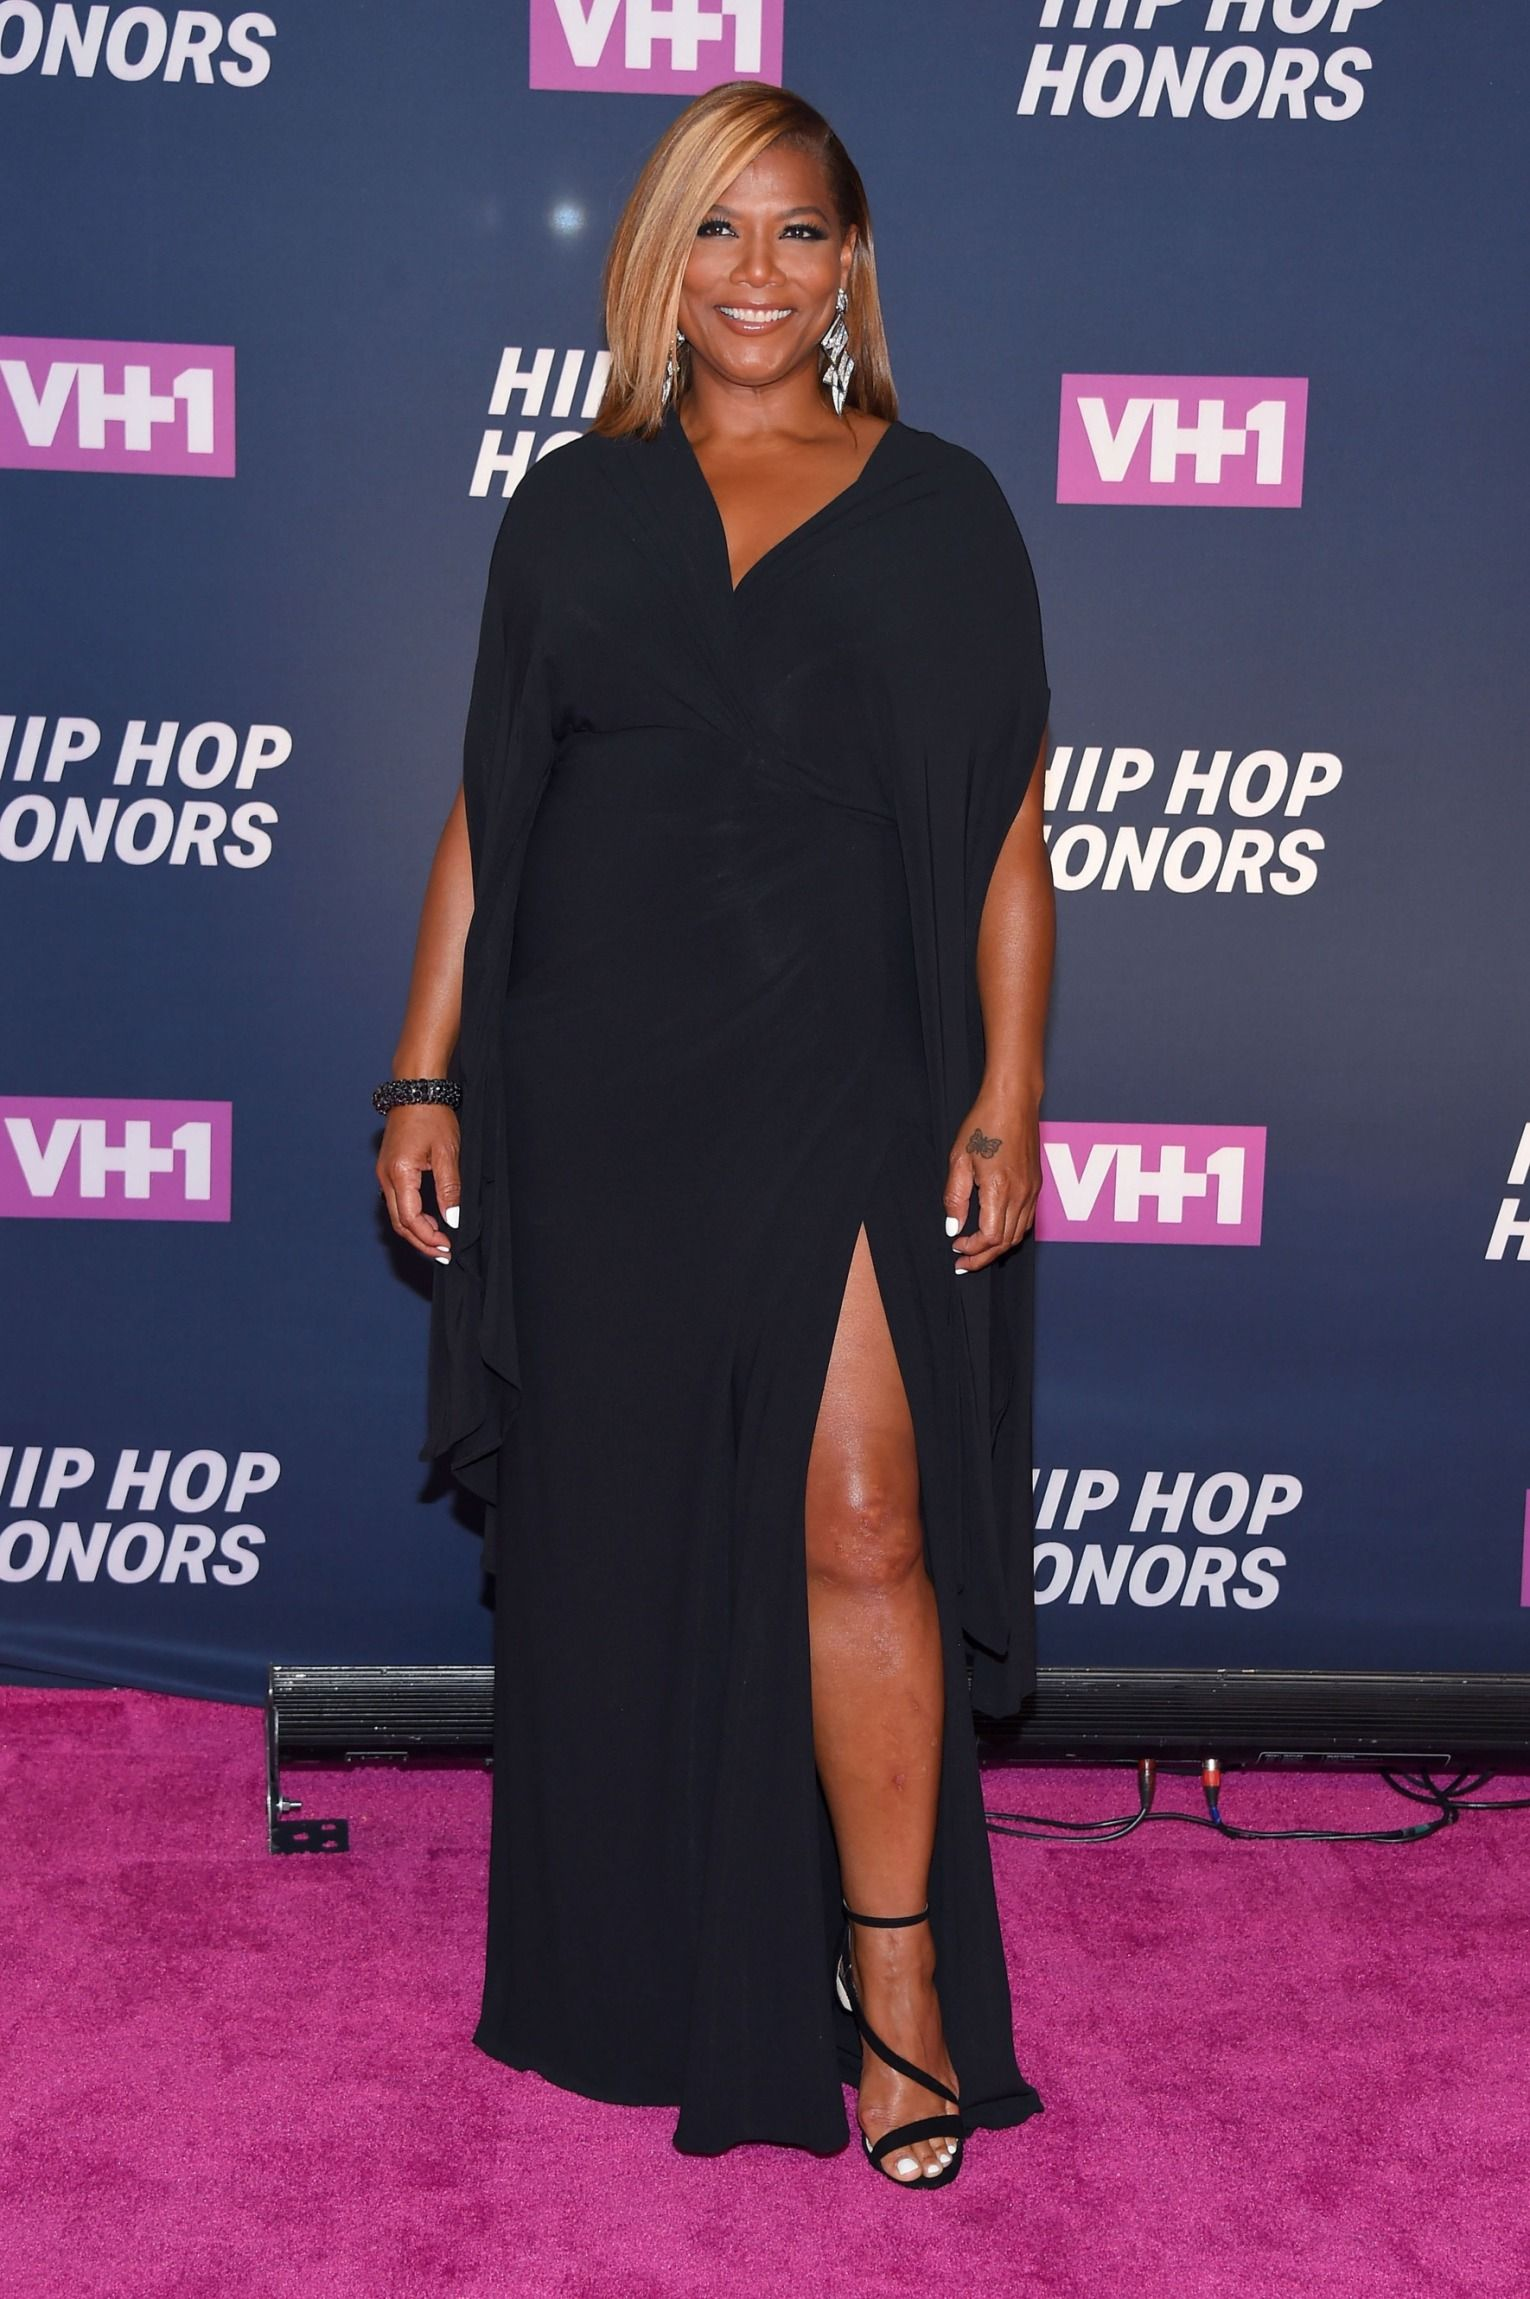 Queen Latifah | Queens, Curves and Curvy